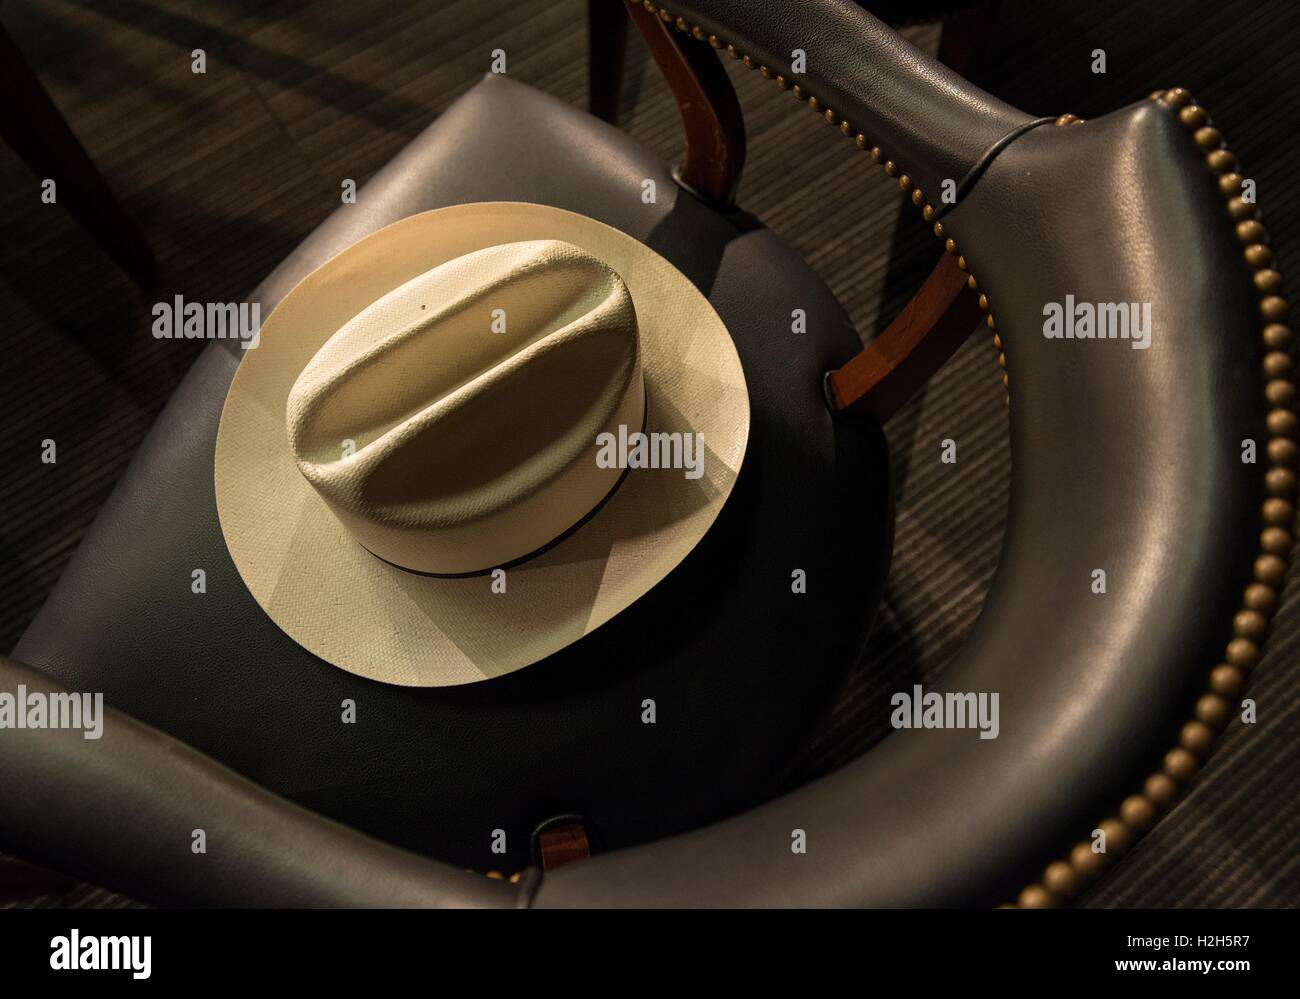 A ten-gallon cowboy hat sits in a leather arm chair during a special event between the Texas Tribune and the LBJ - Stock Image